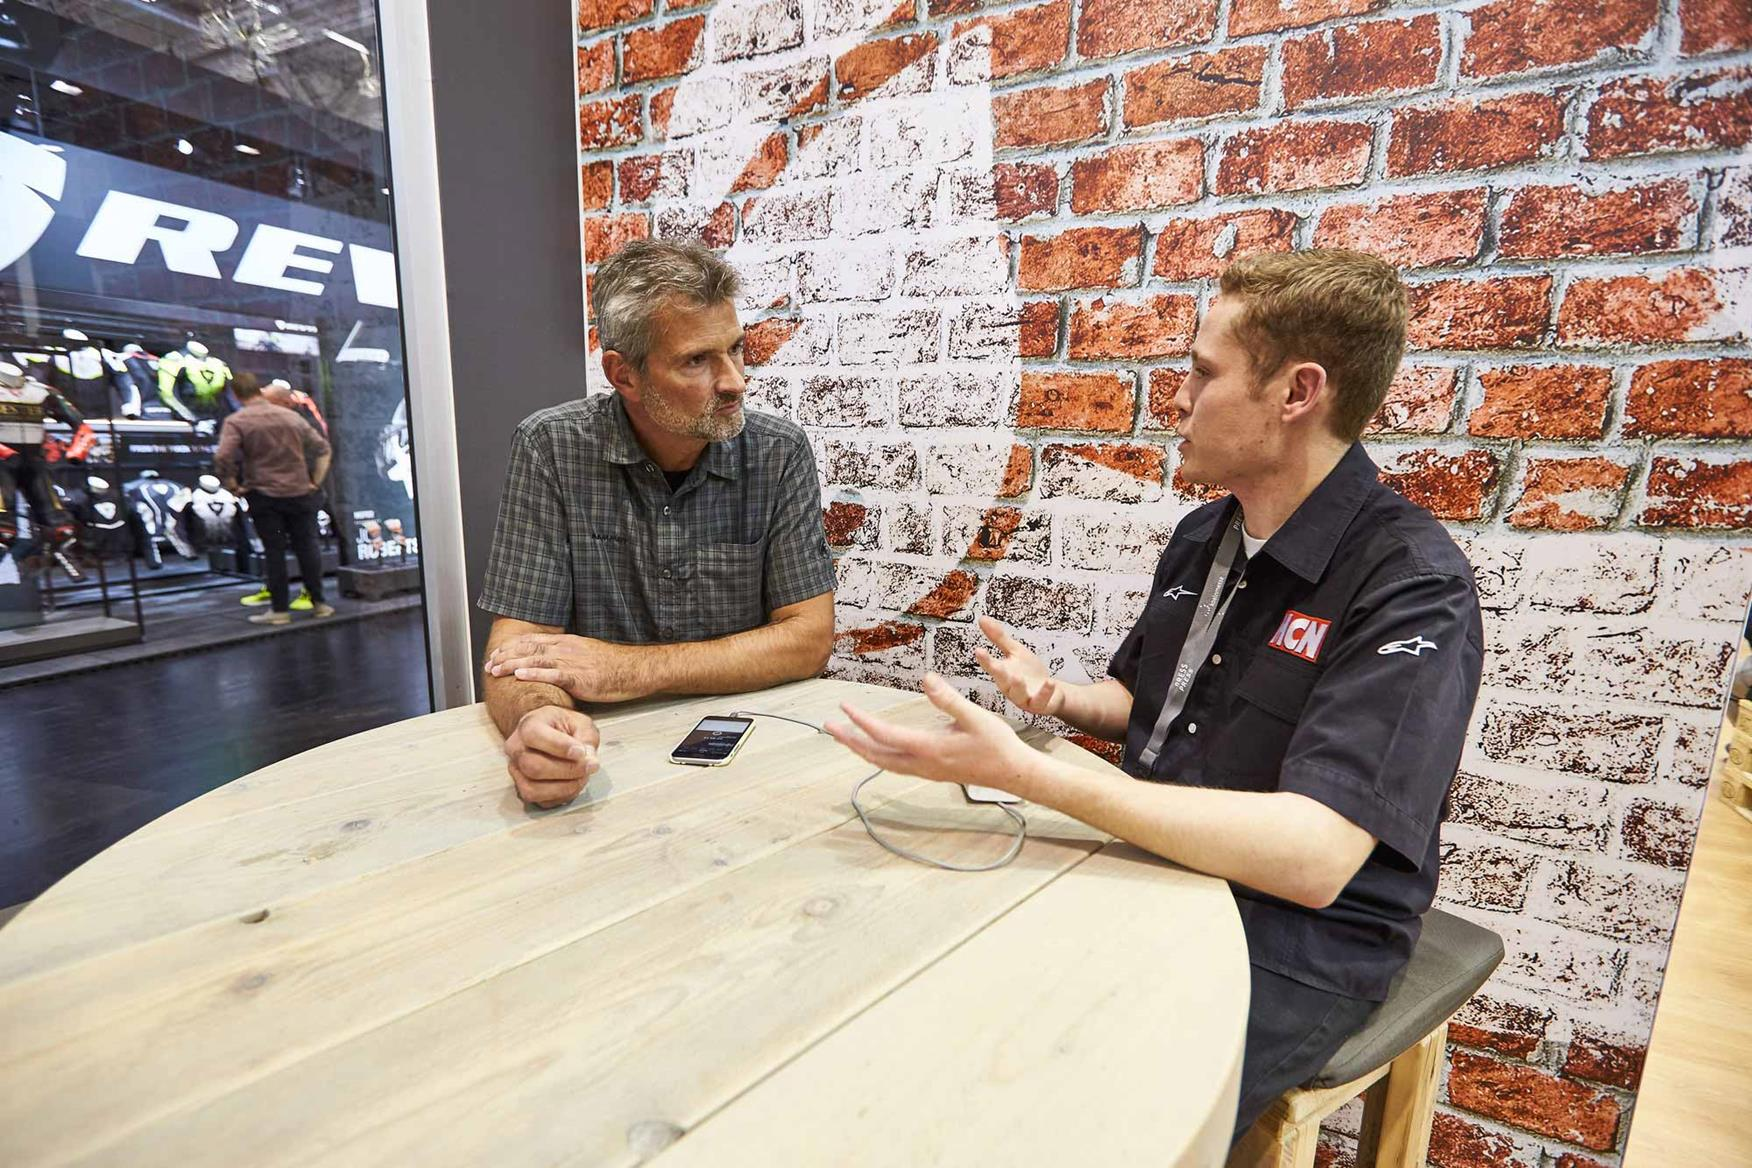 MCN's Dan Sutherland talks with Jurgen Plaschka at Intermot